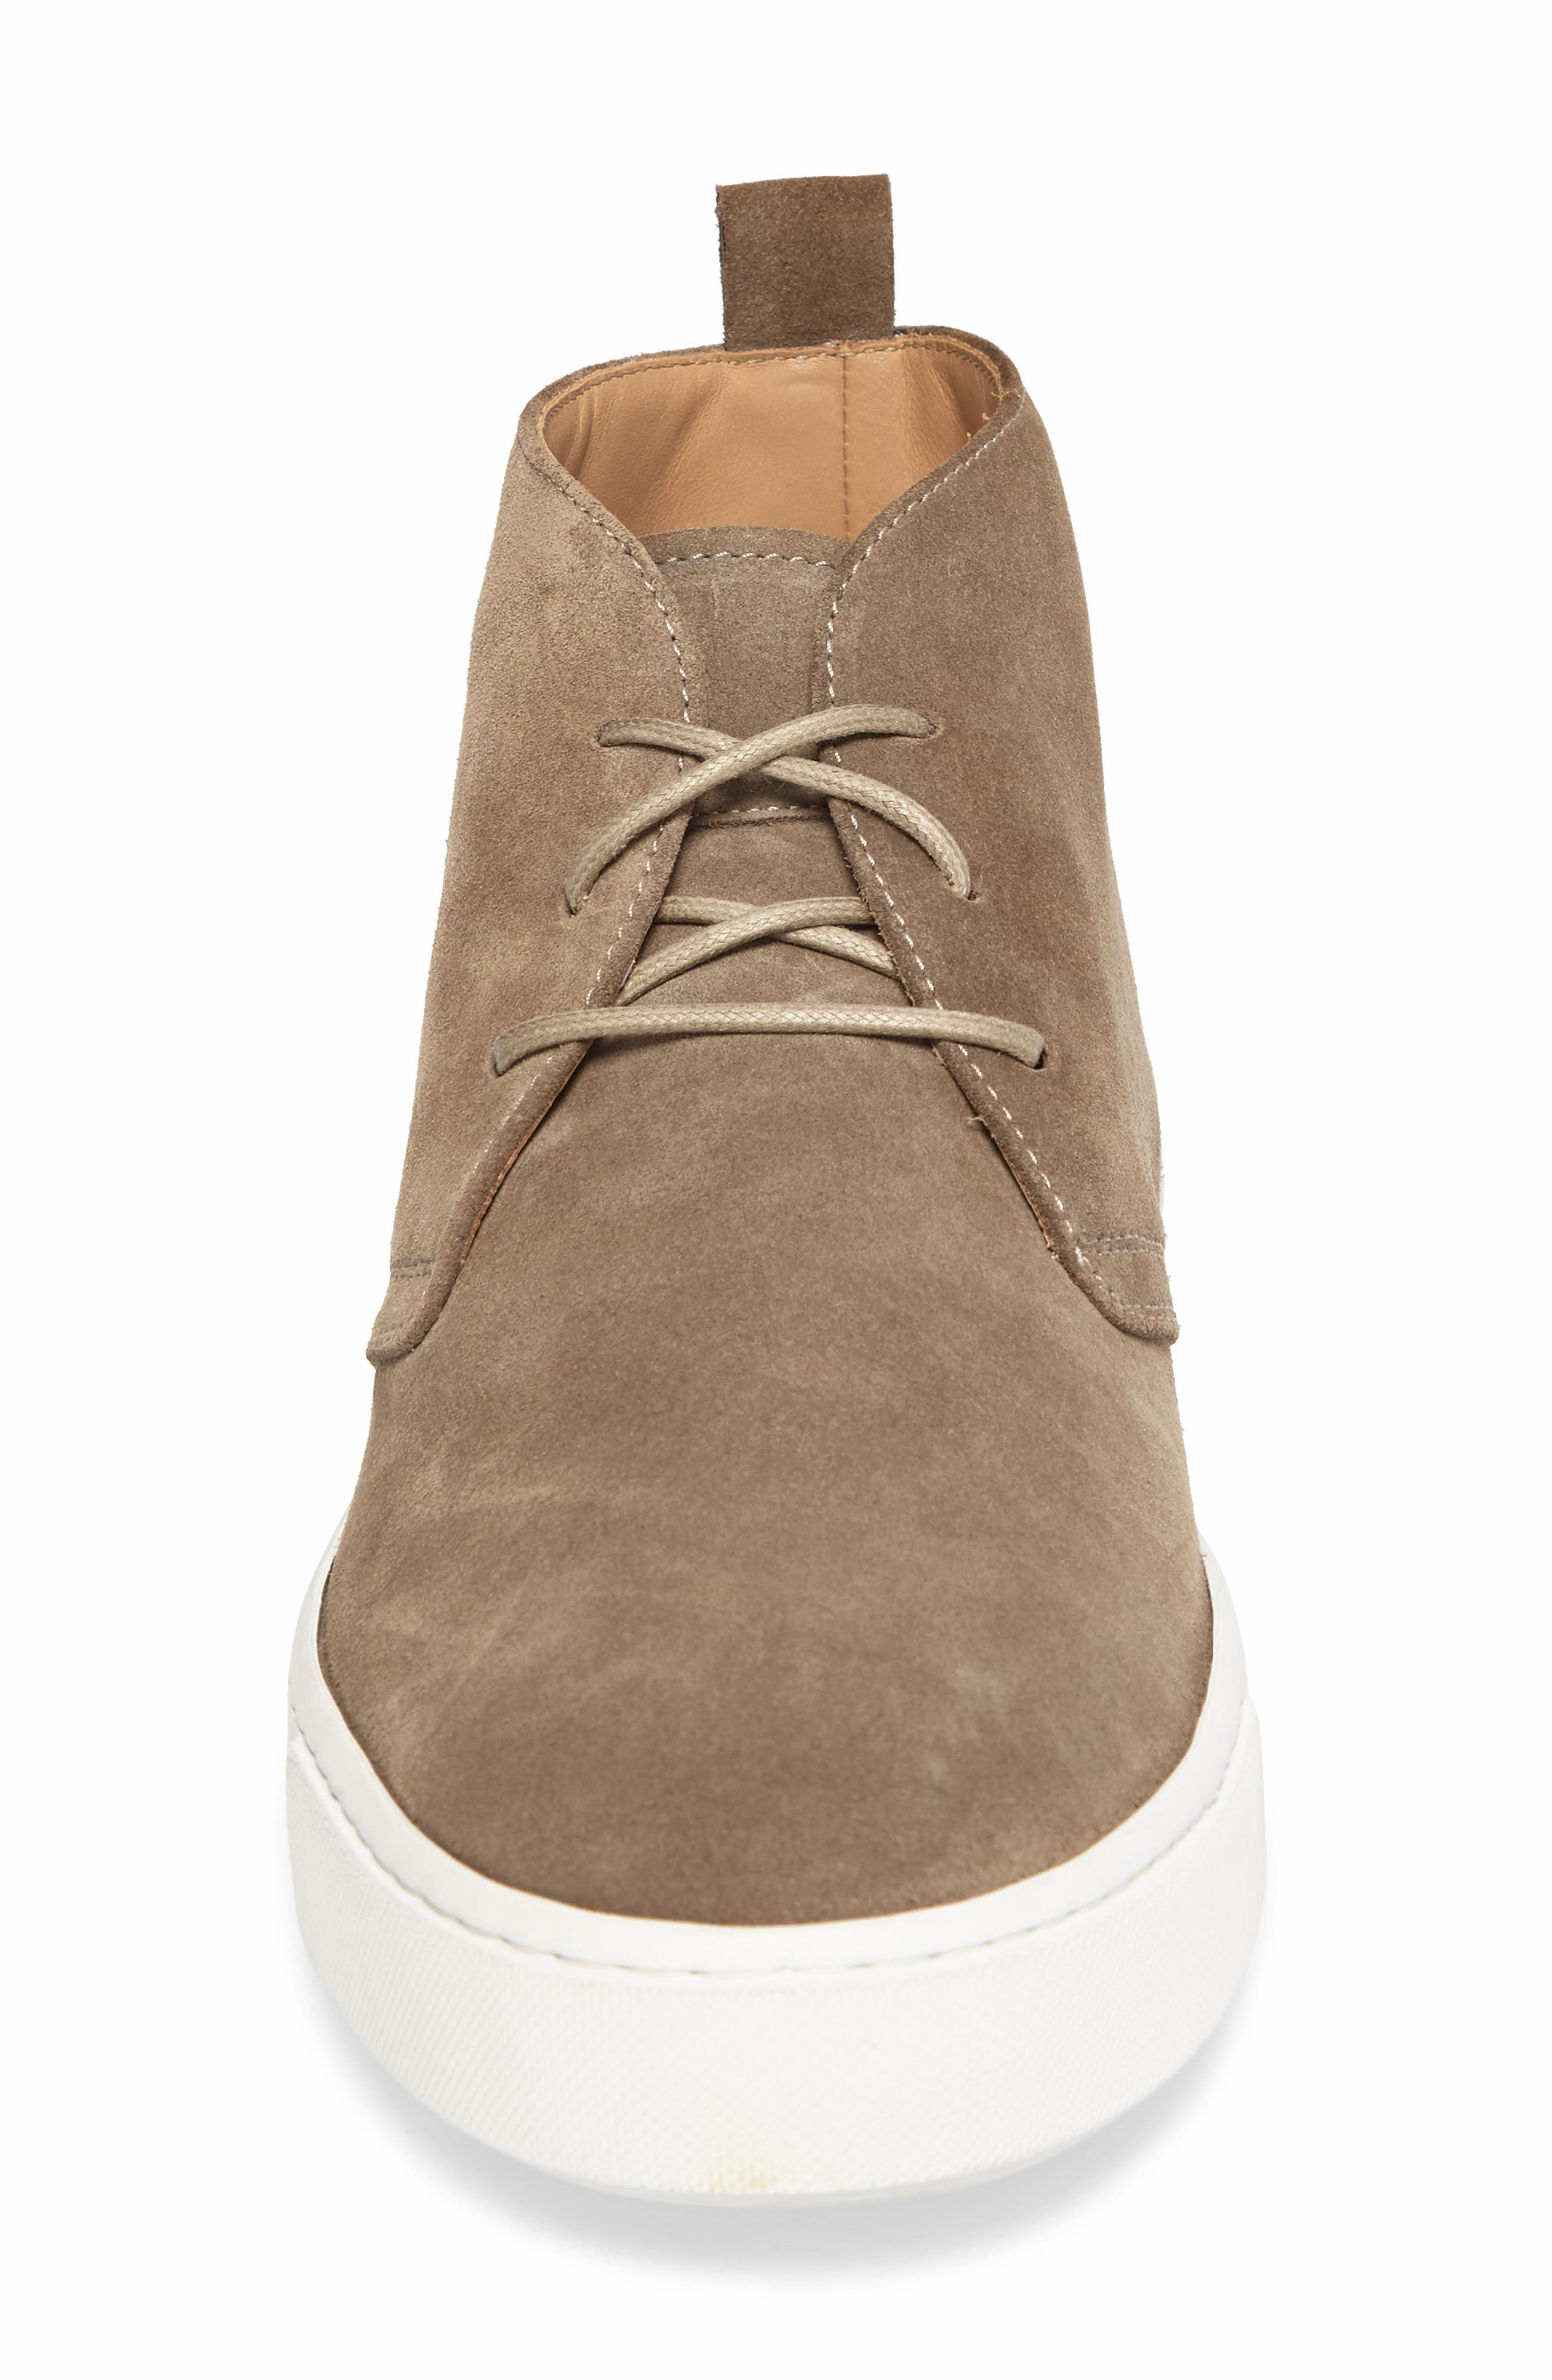 Leather Chukka Boot,                             Alternate thumbnail 4, color,                             Brown Suede